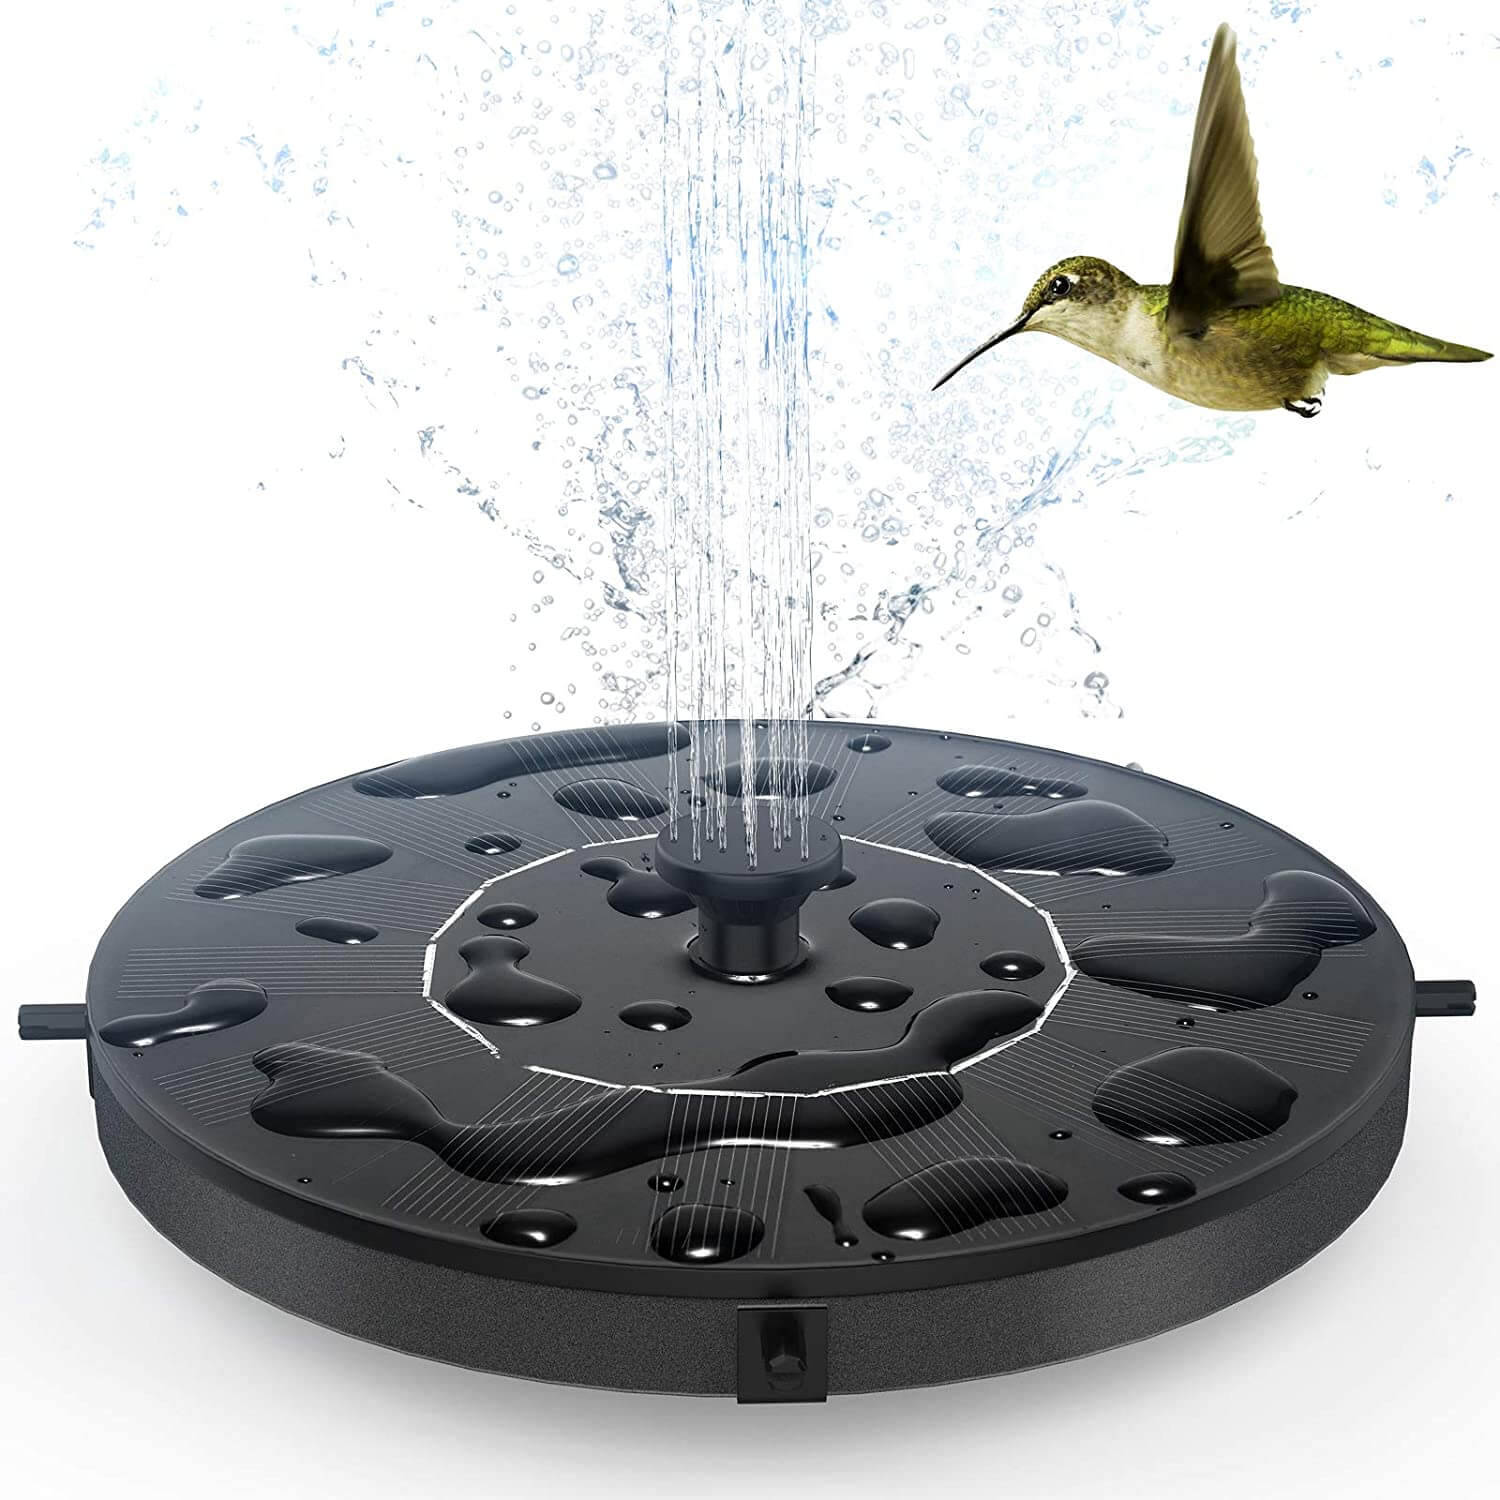 GOLDFLOWER Floating Solar Powered Water Fountain Pump